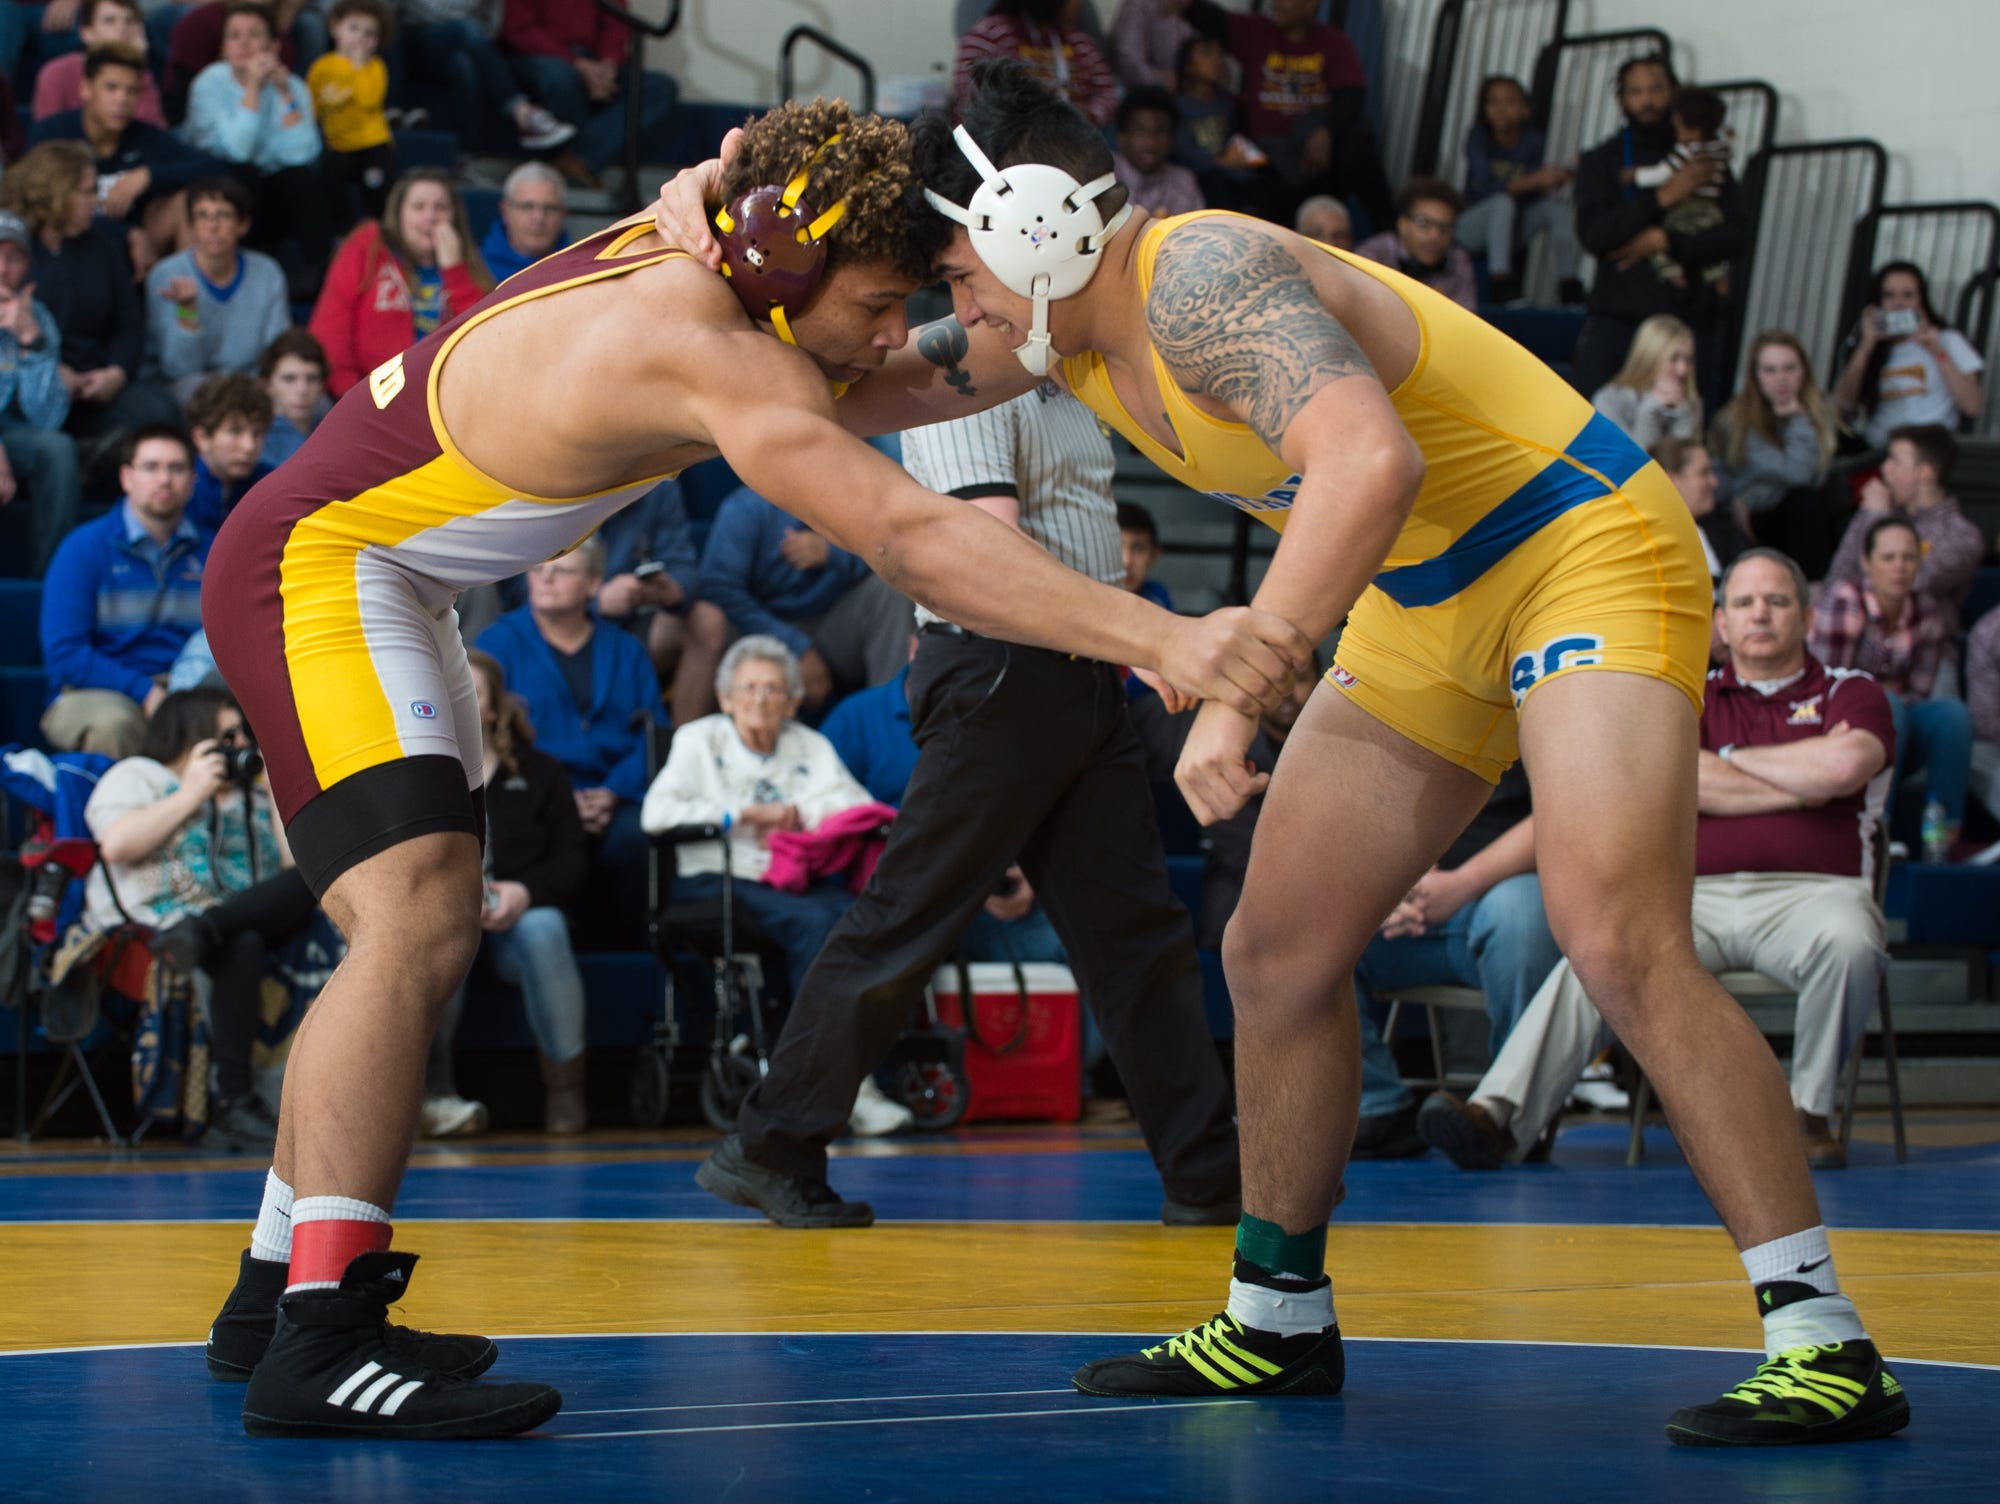 Milford's Dominic Covington, left, and Sussex Central's Johnny Morris battle for position in the 220 pound championship match at the Henlopen Conference wrestling tournament at Sussex Central High School.